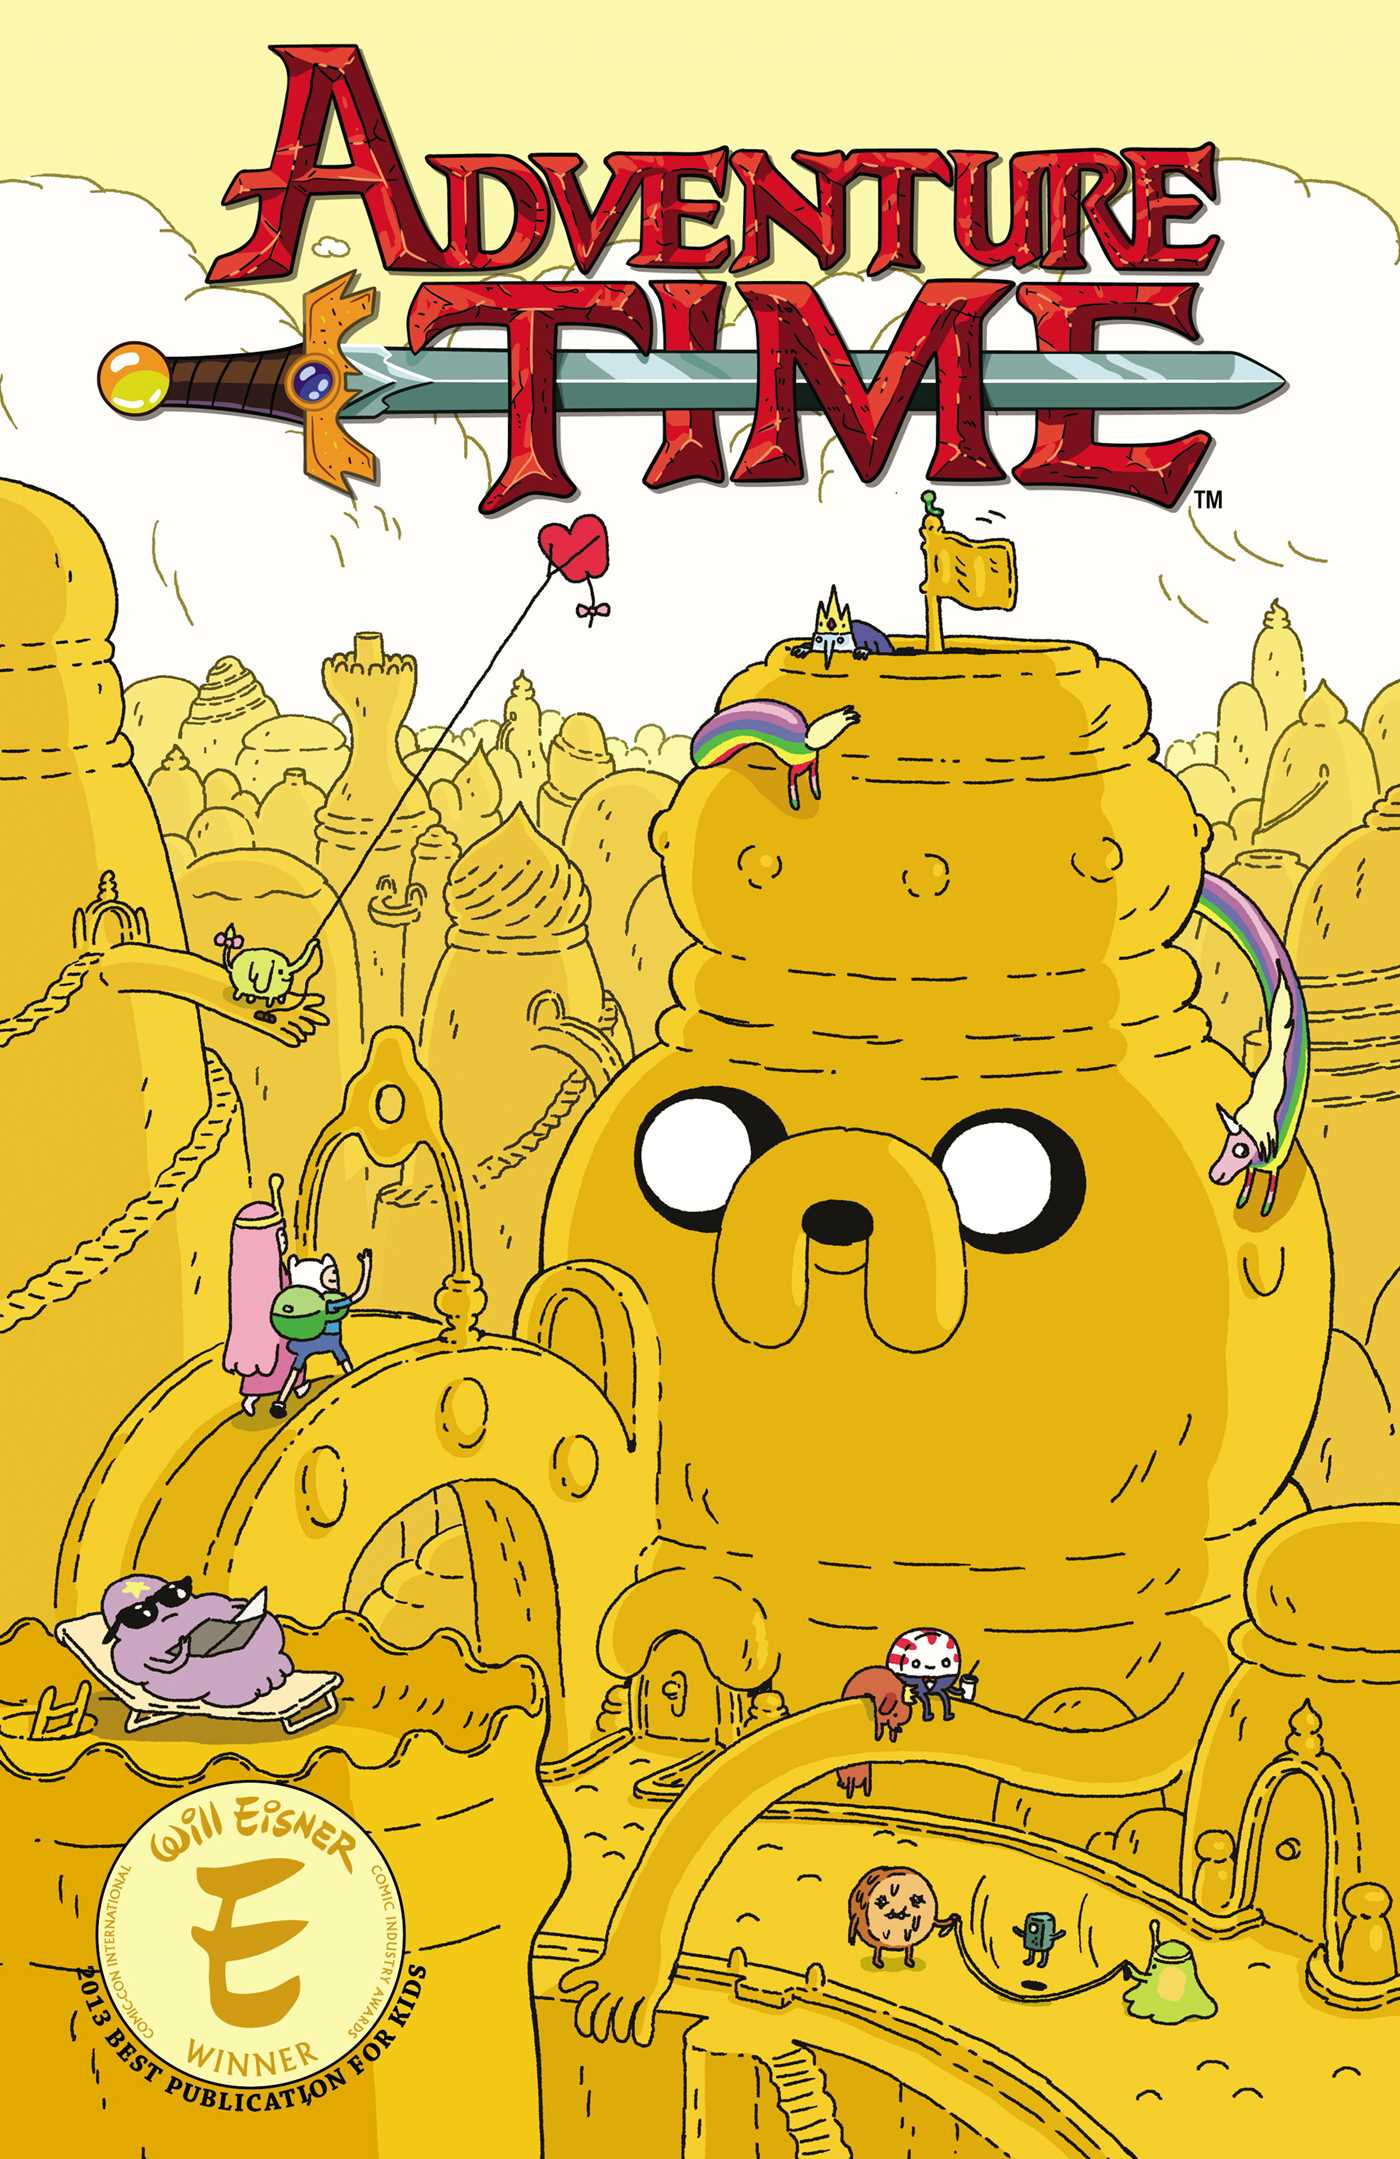 Adventure-time-vol-5-9781608864010_hr